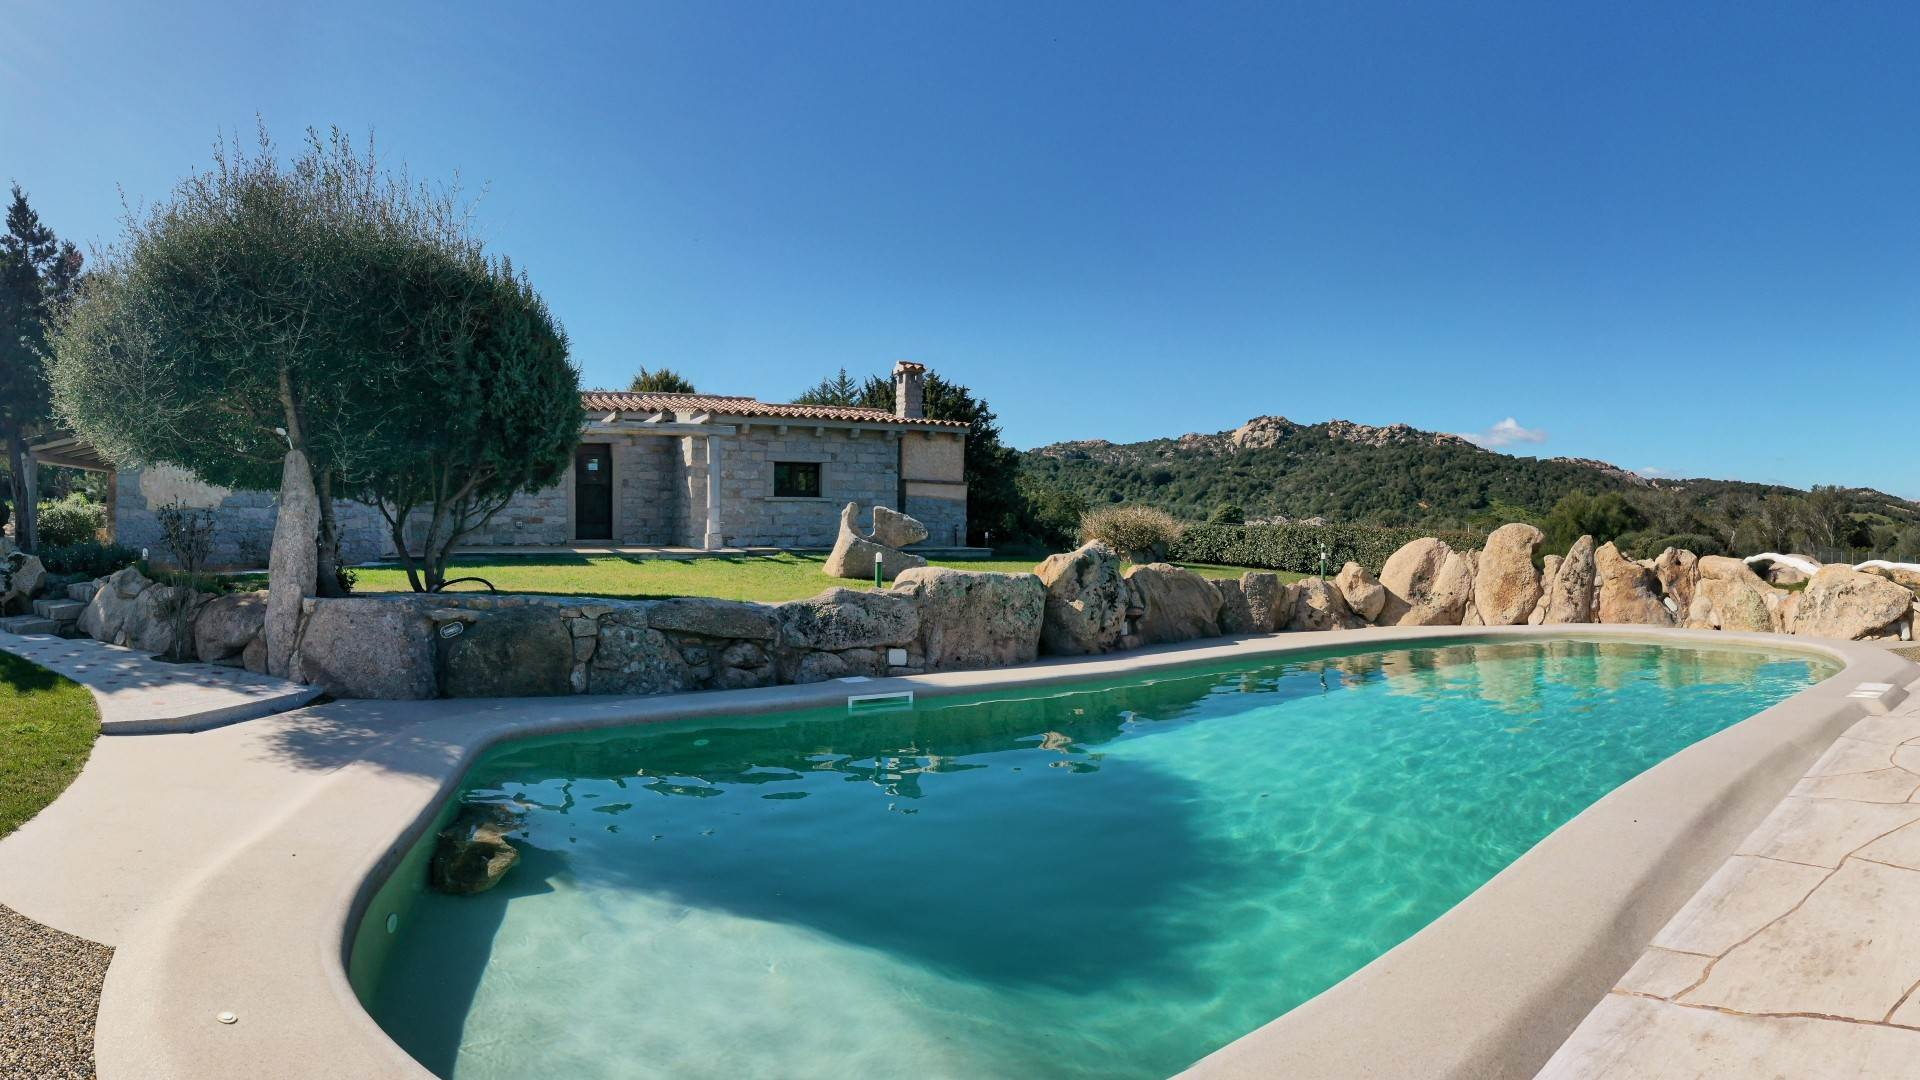 別墅 / 联排别墅 為 出售 在 Country Villa with Pool Costa Smeralda, Olbia Tempio,07021 義大利